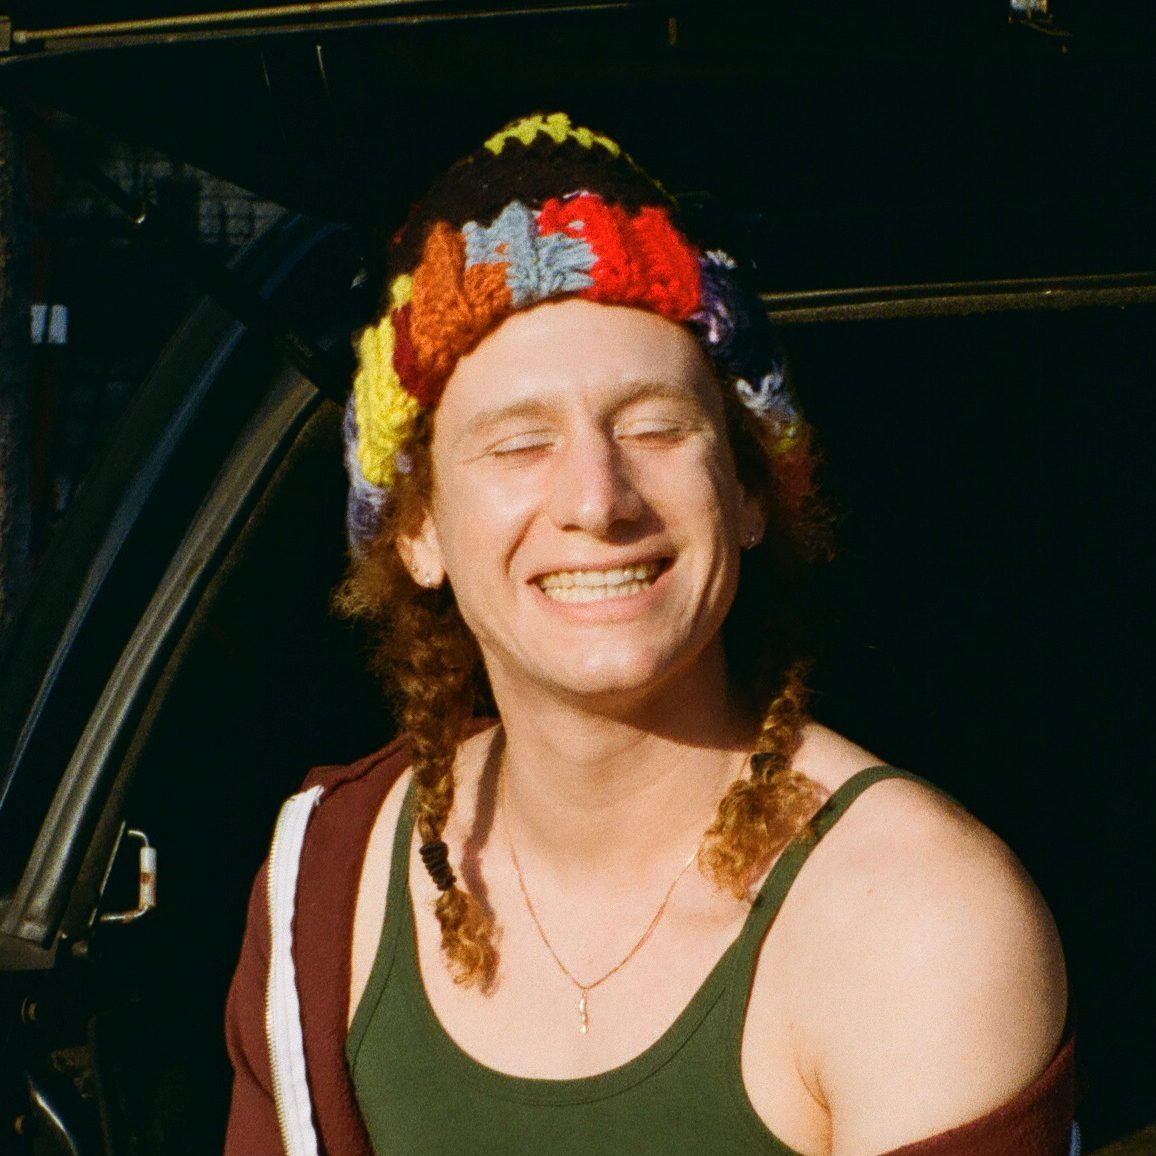 Johnny sitting on the tailgate of a car next to a surfboard in Brooklyn, NY. They have their hair in braids under a colorful knit cap, smiling big with their eyes closed.